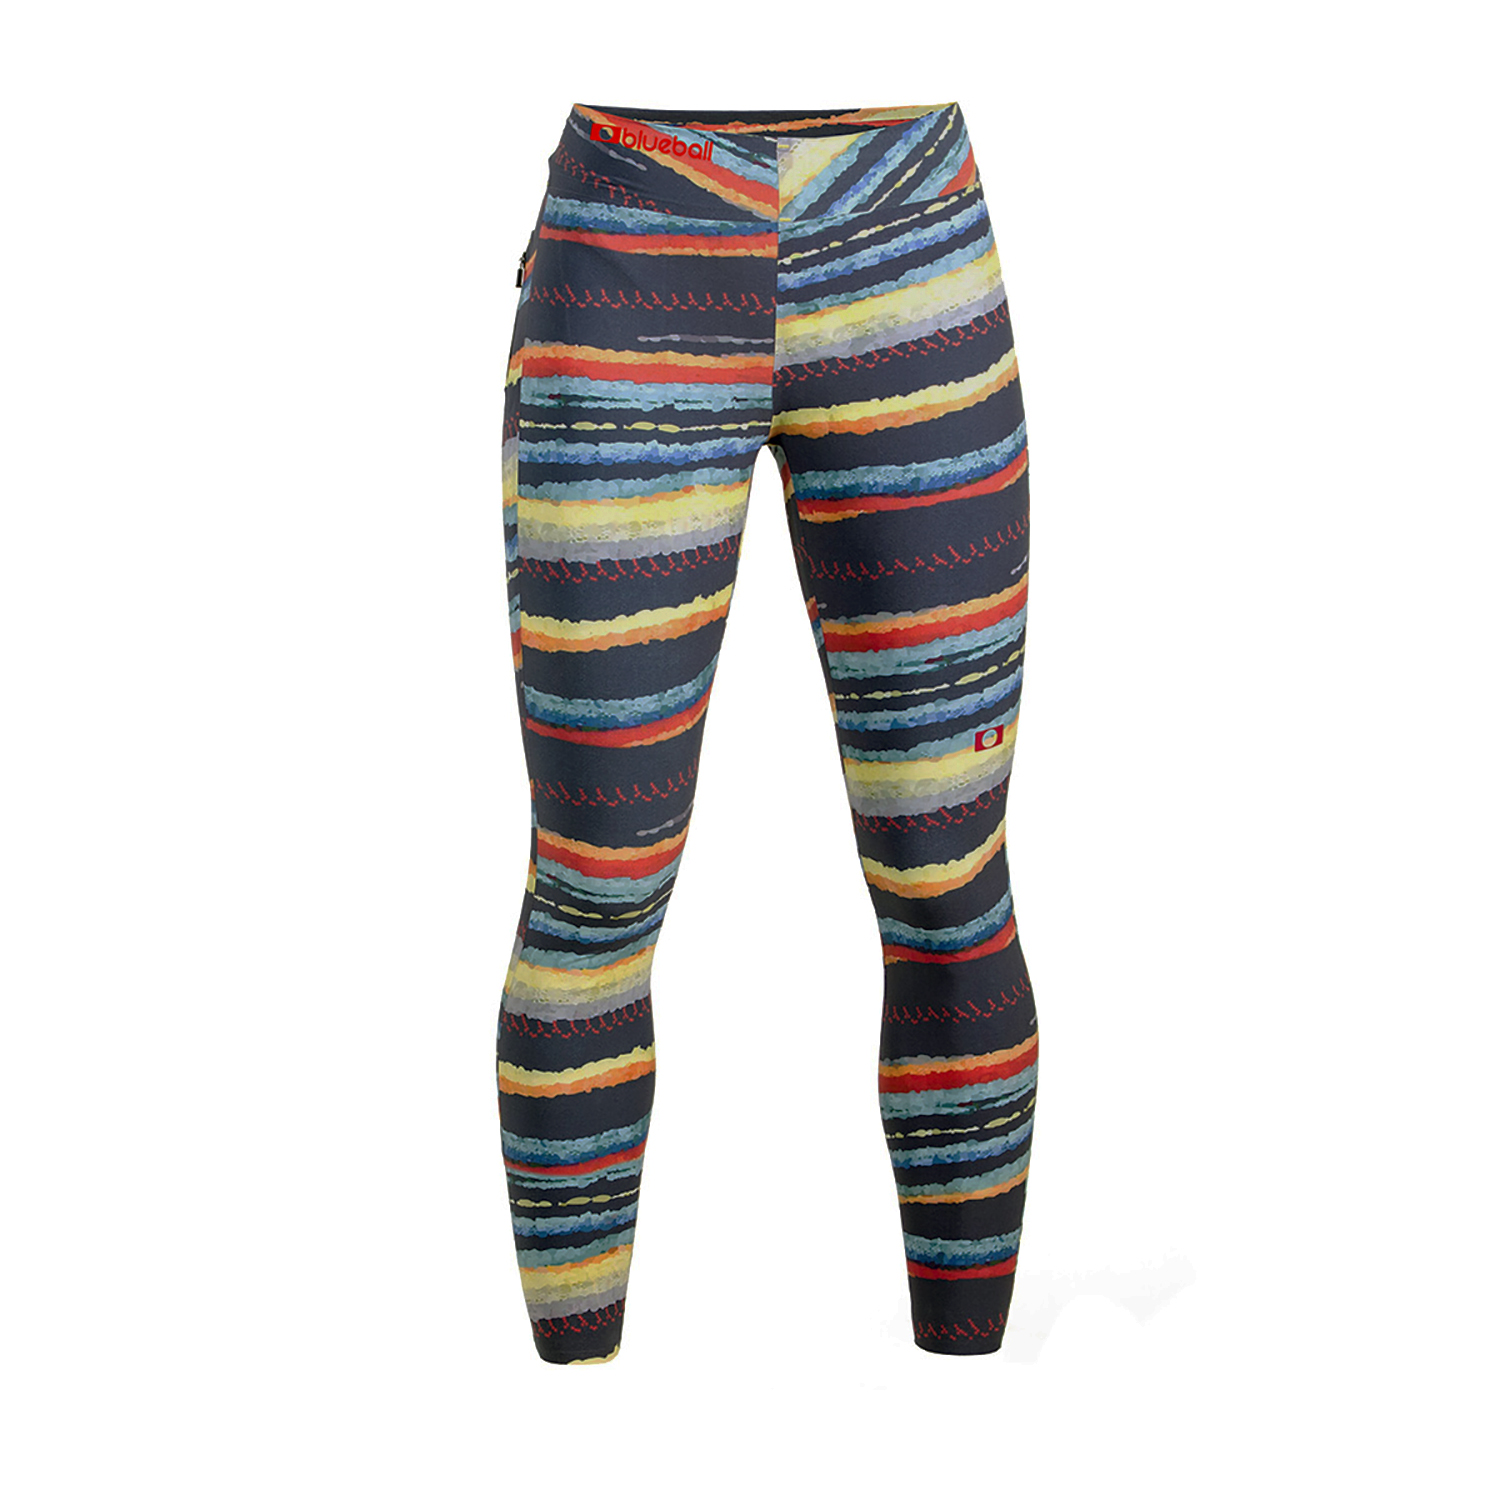 watersport compression full length pants lady